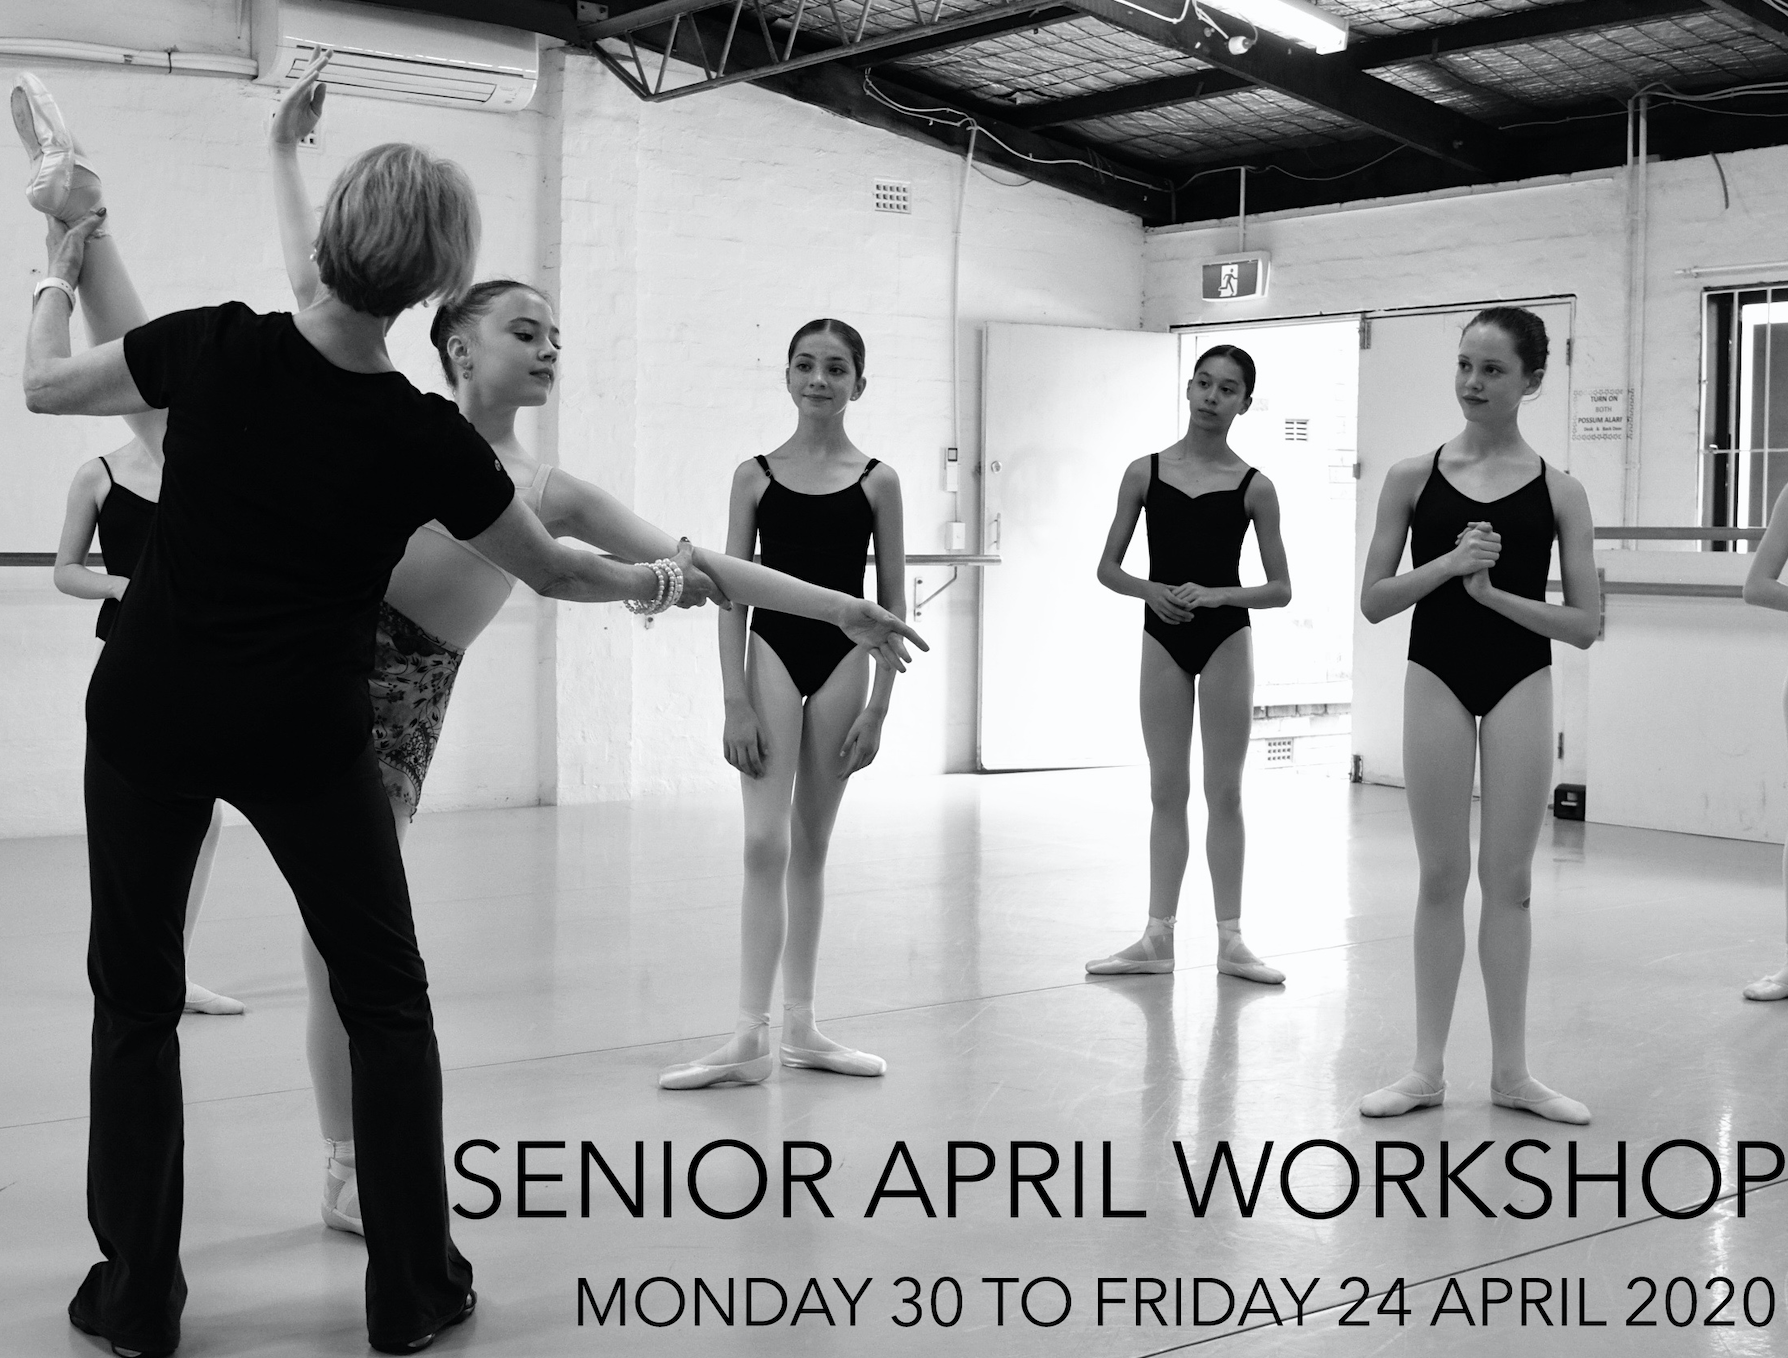 APRIL SENIOR WORKSHOPS 2020